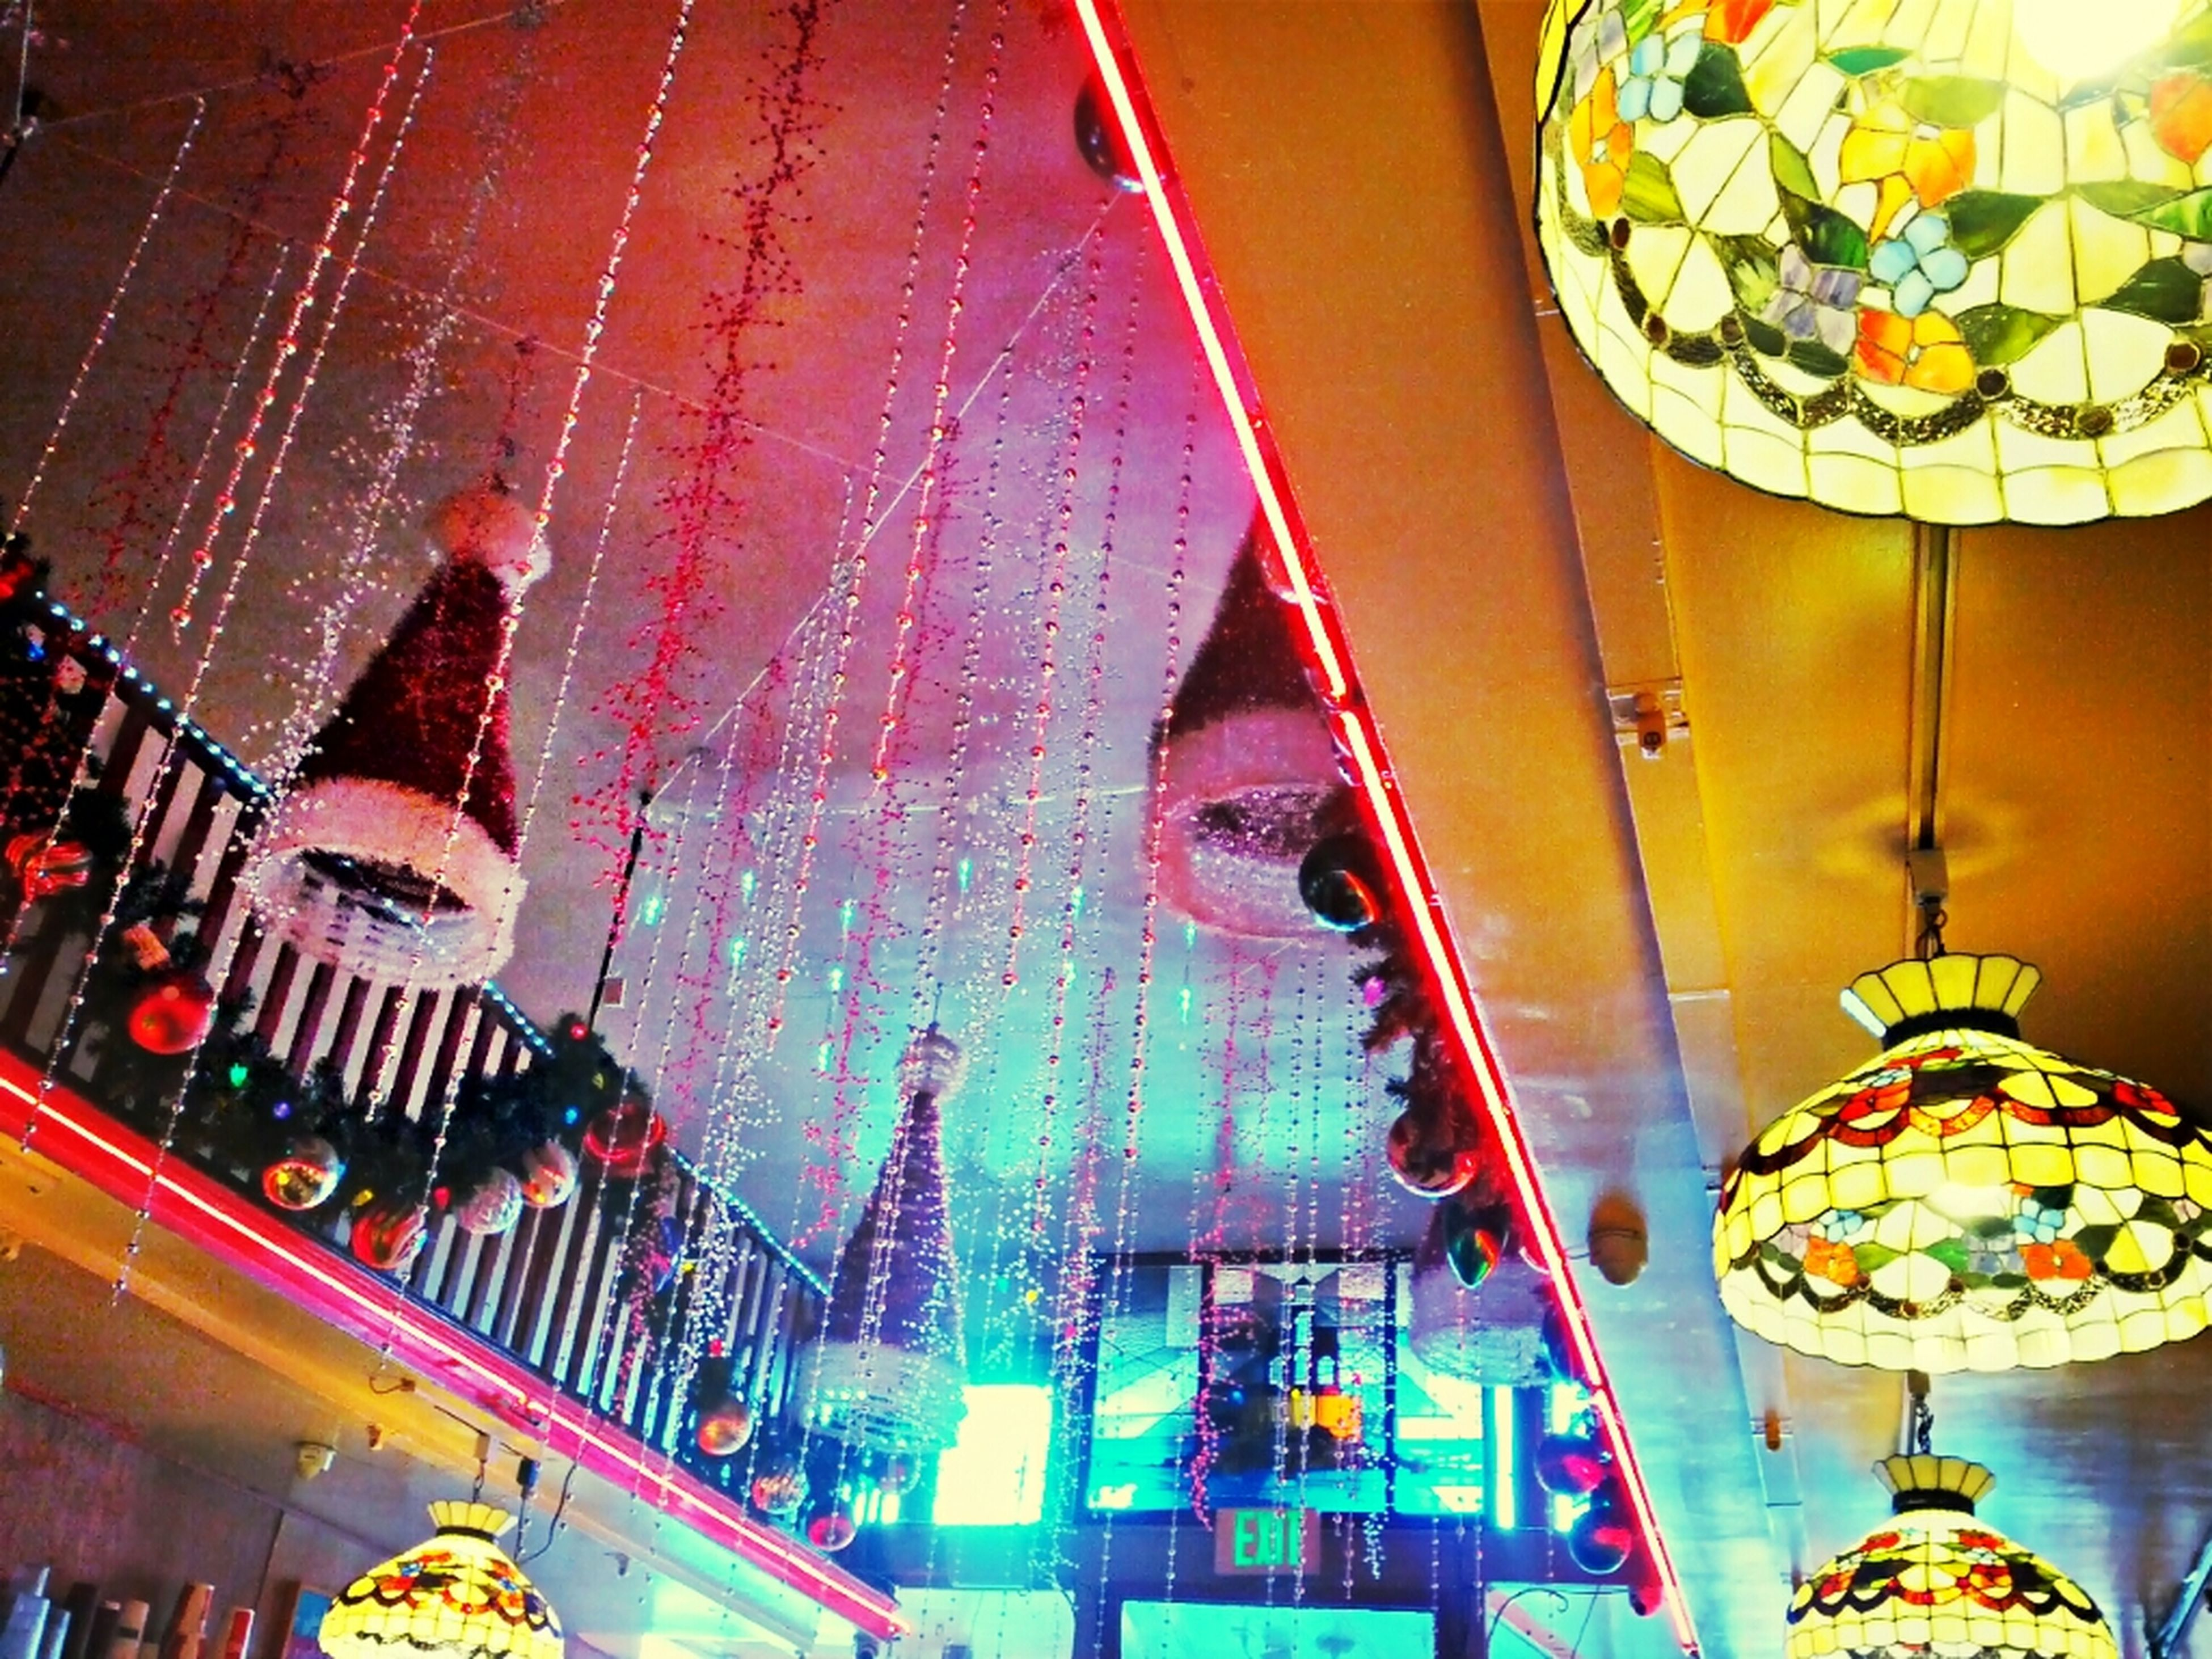 illuminated, low angle view, decoration, multi colored, architecture, built structure, celebration, hanging, arts culture and entertainment, tradition, building exterior, lighting equipment, indoors, cultures, amusement park, night, amusement park ride, ceiling, christmas lights, traditional festival